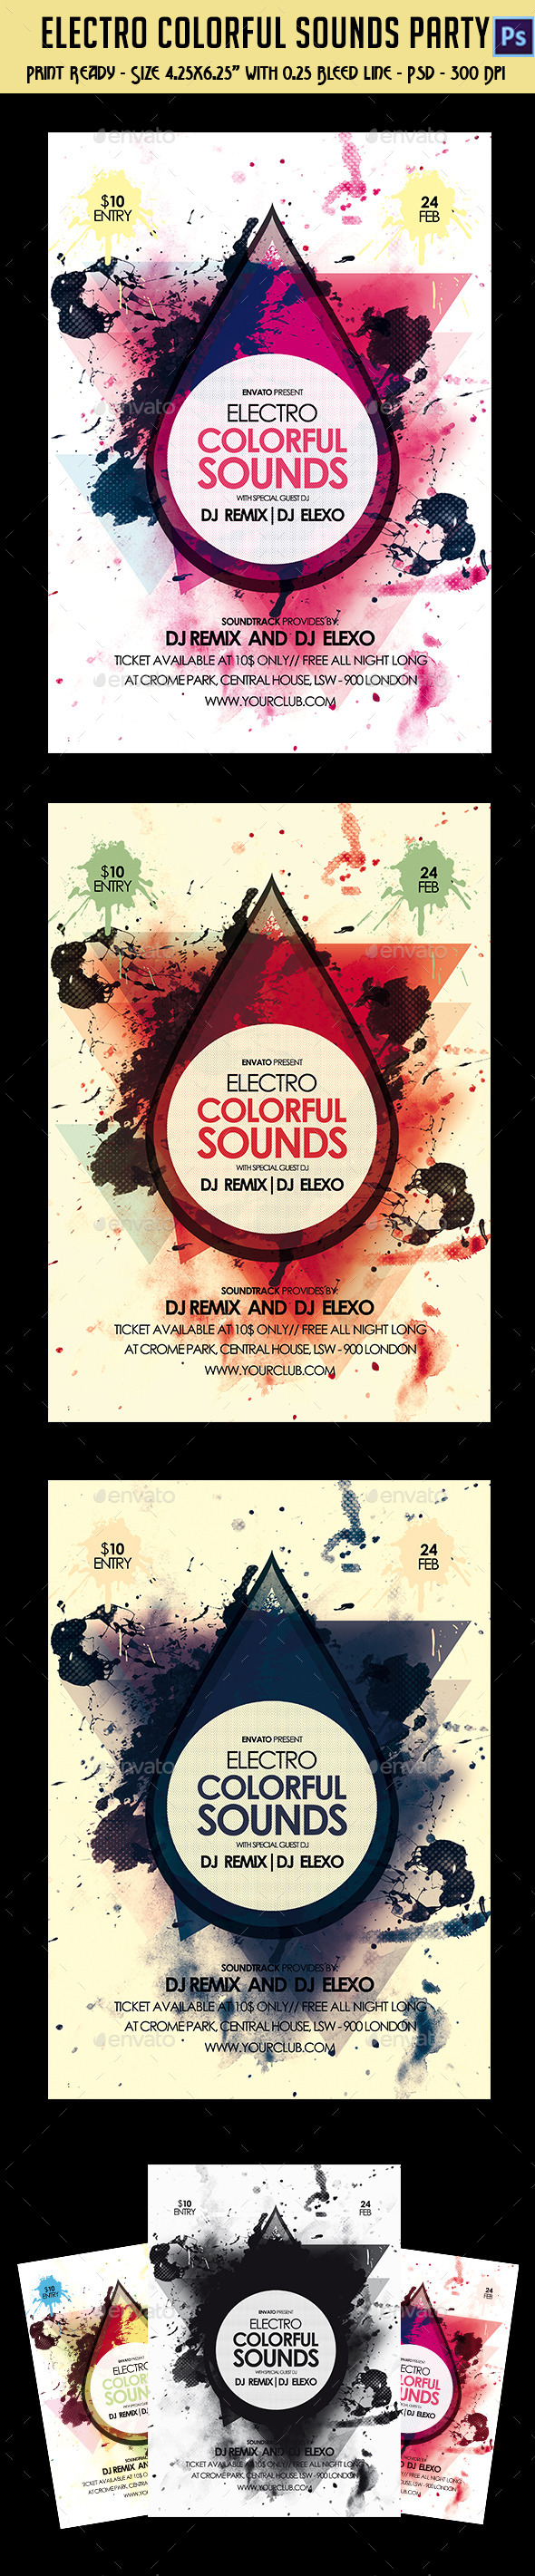 GraphicRiver Electro Colorful Sounds Party Flyer 10176659